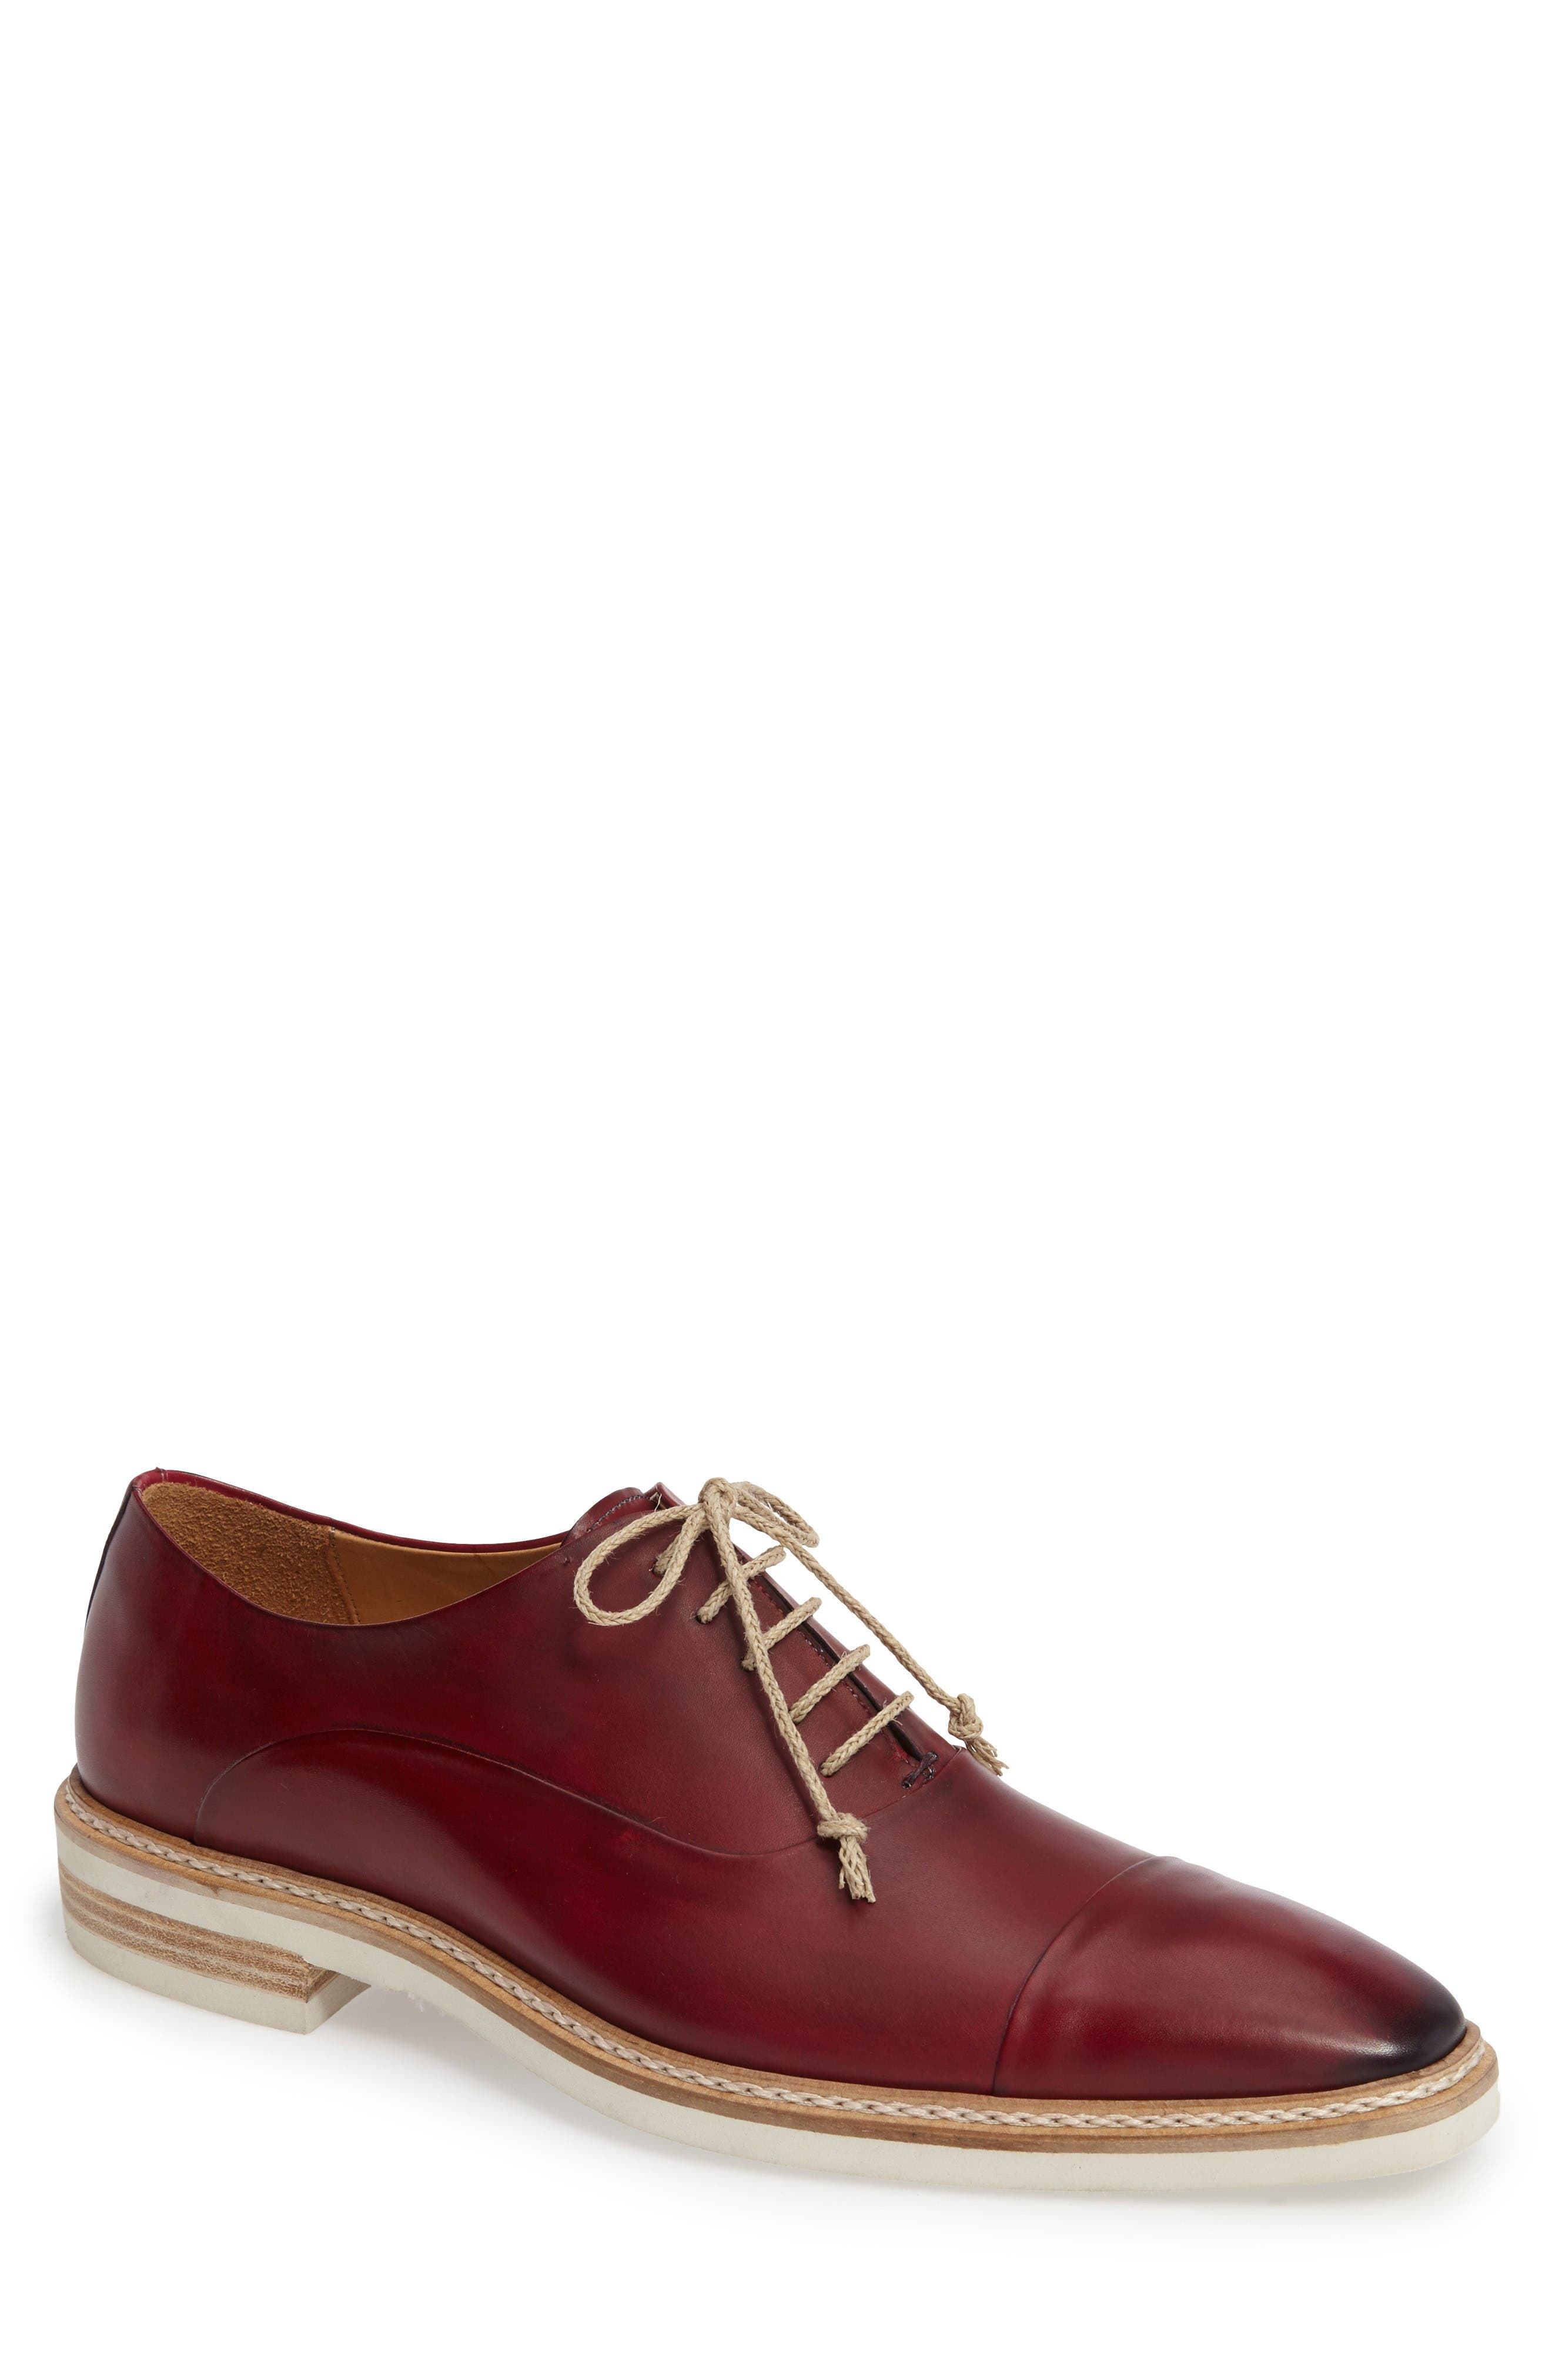 Curie Cap Toe Oxford,                             Main thumbnail 1, color,                             Burgundy Leather